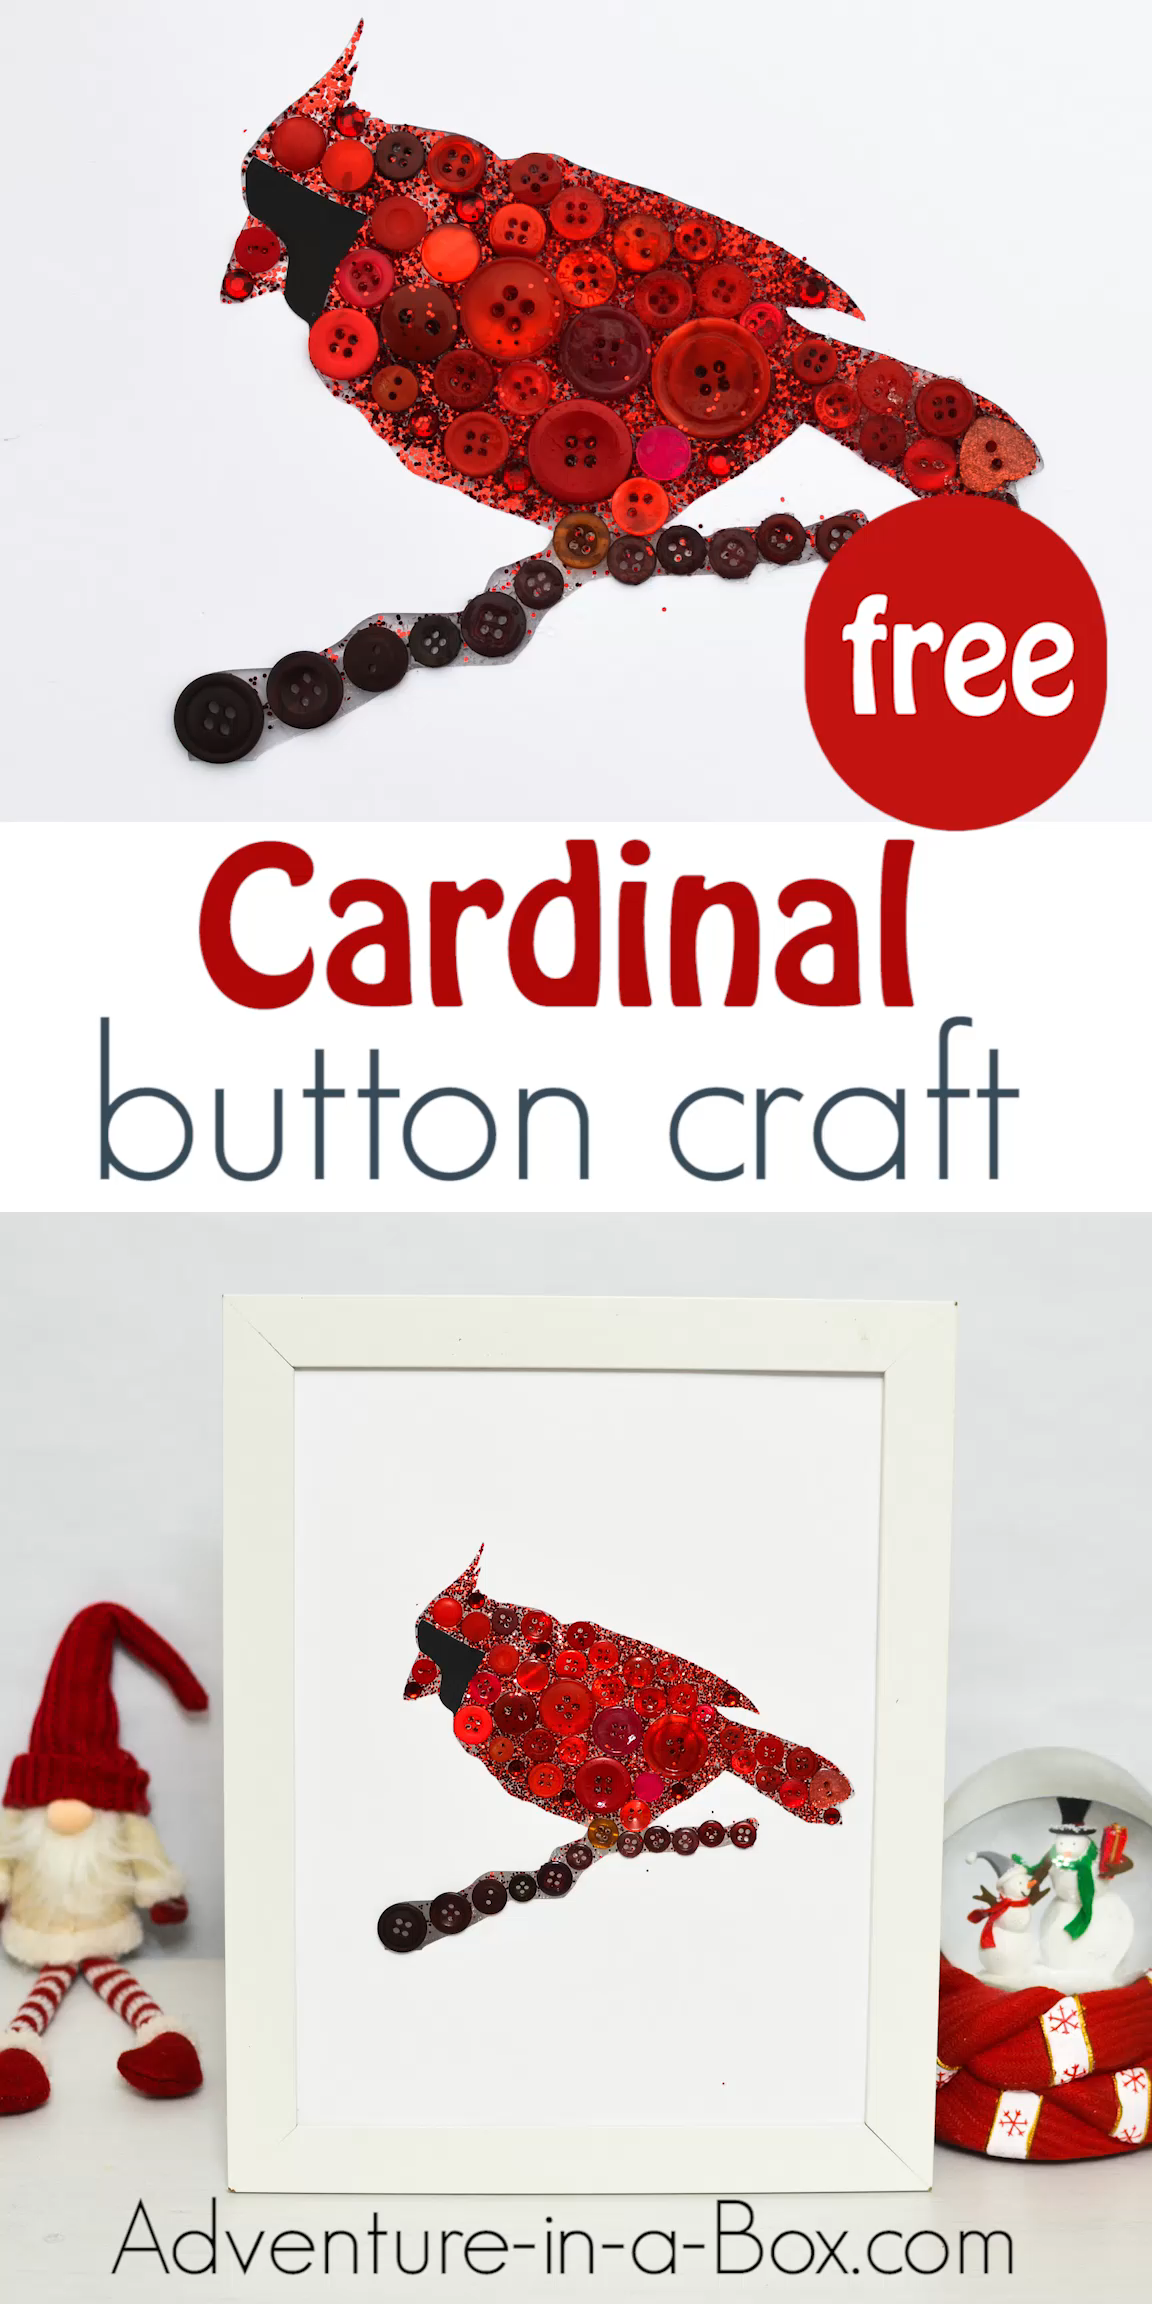 Add some button Christmas art featuring a cardinal bird to your home décor! So easy to put together that even young children can make this winter craft.